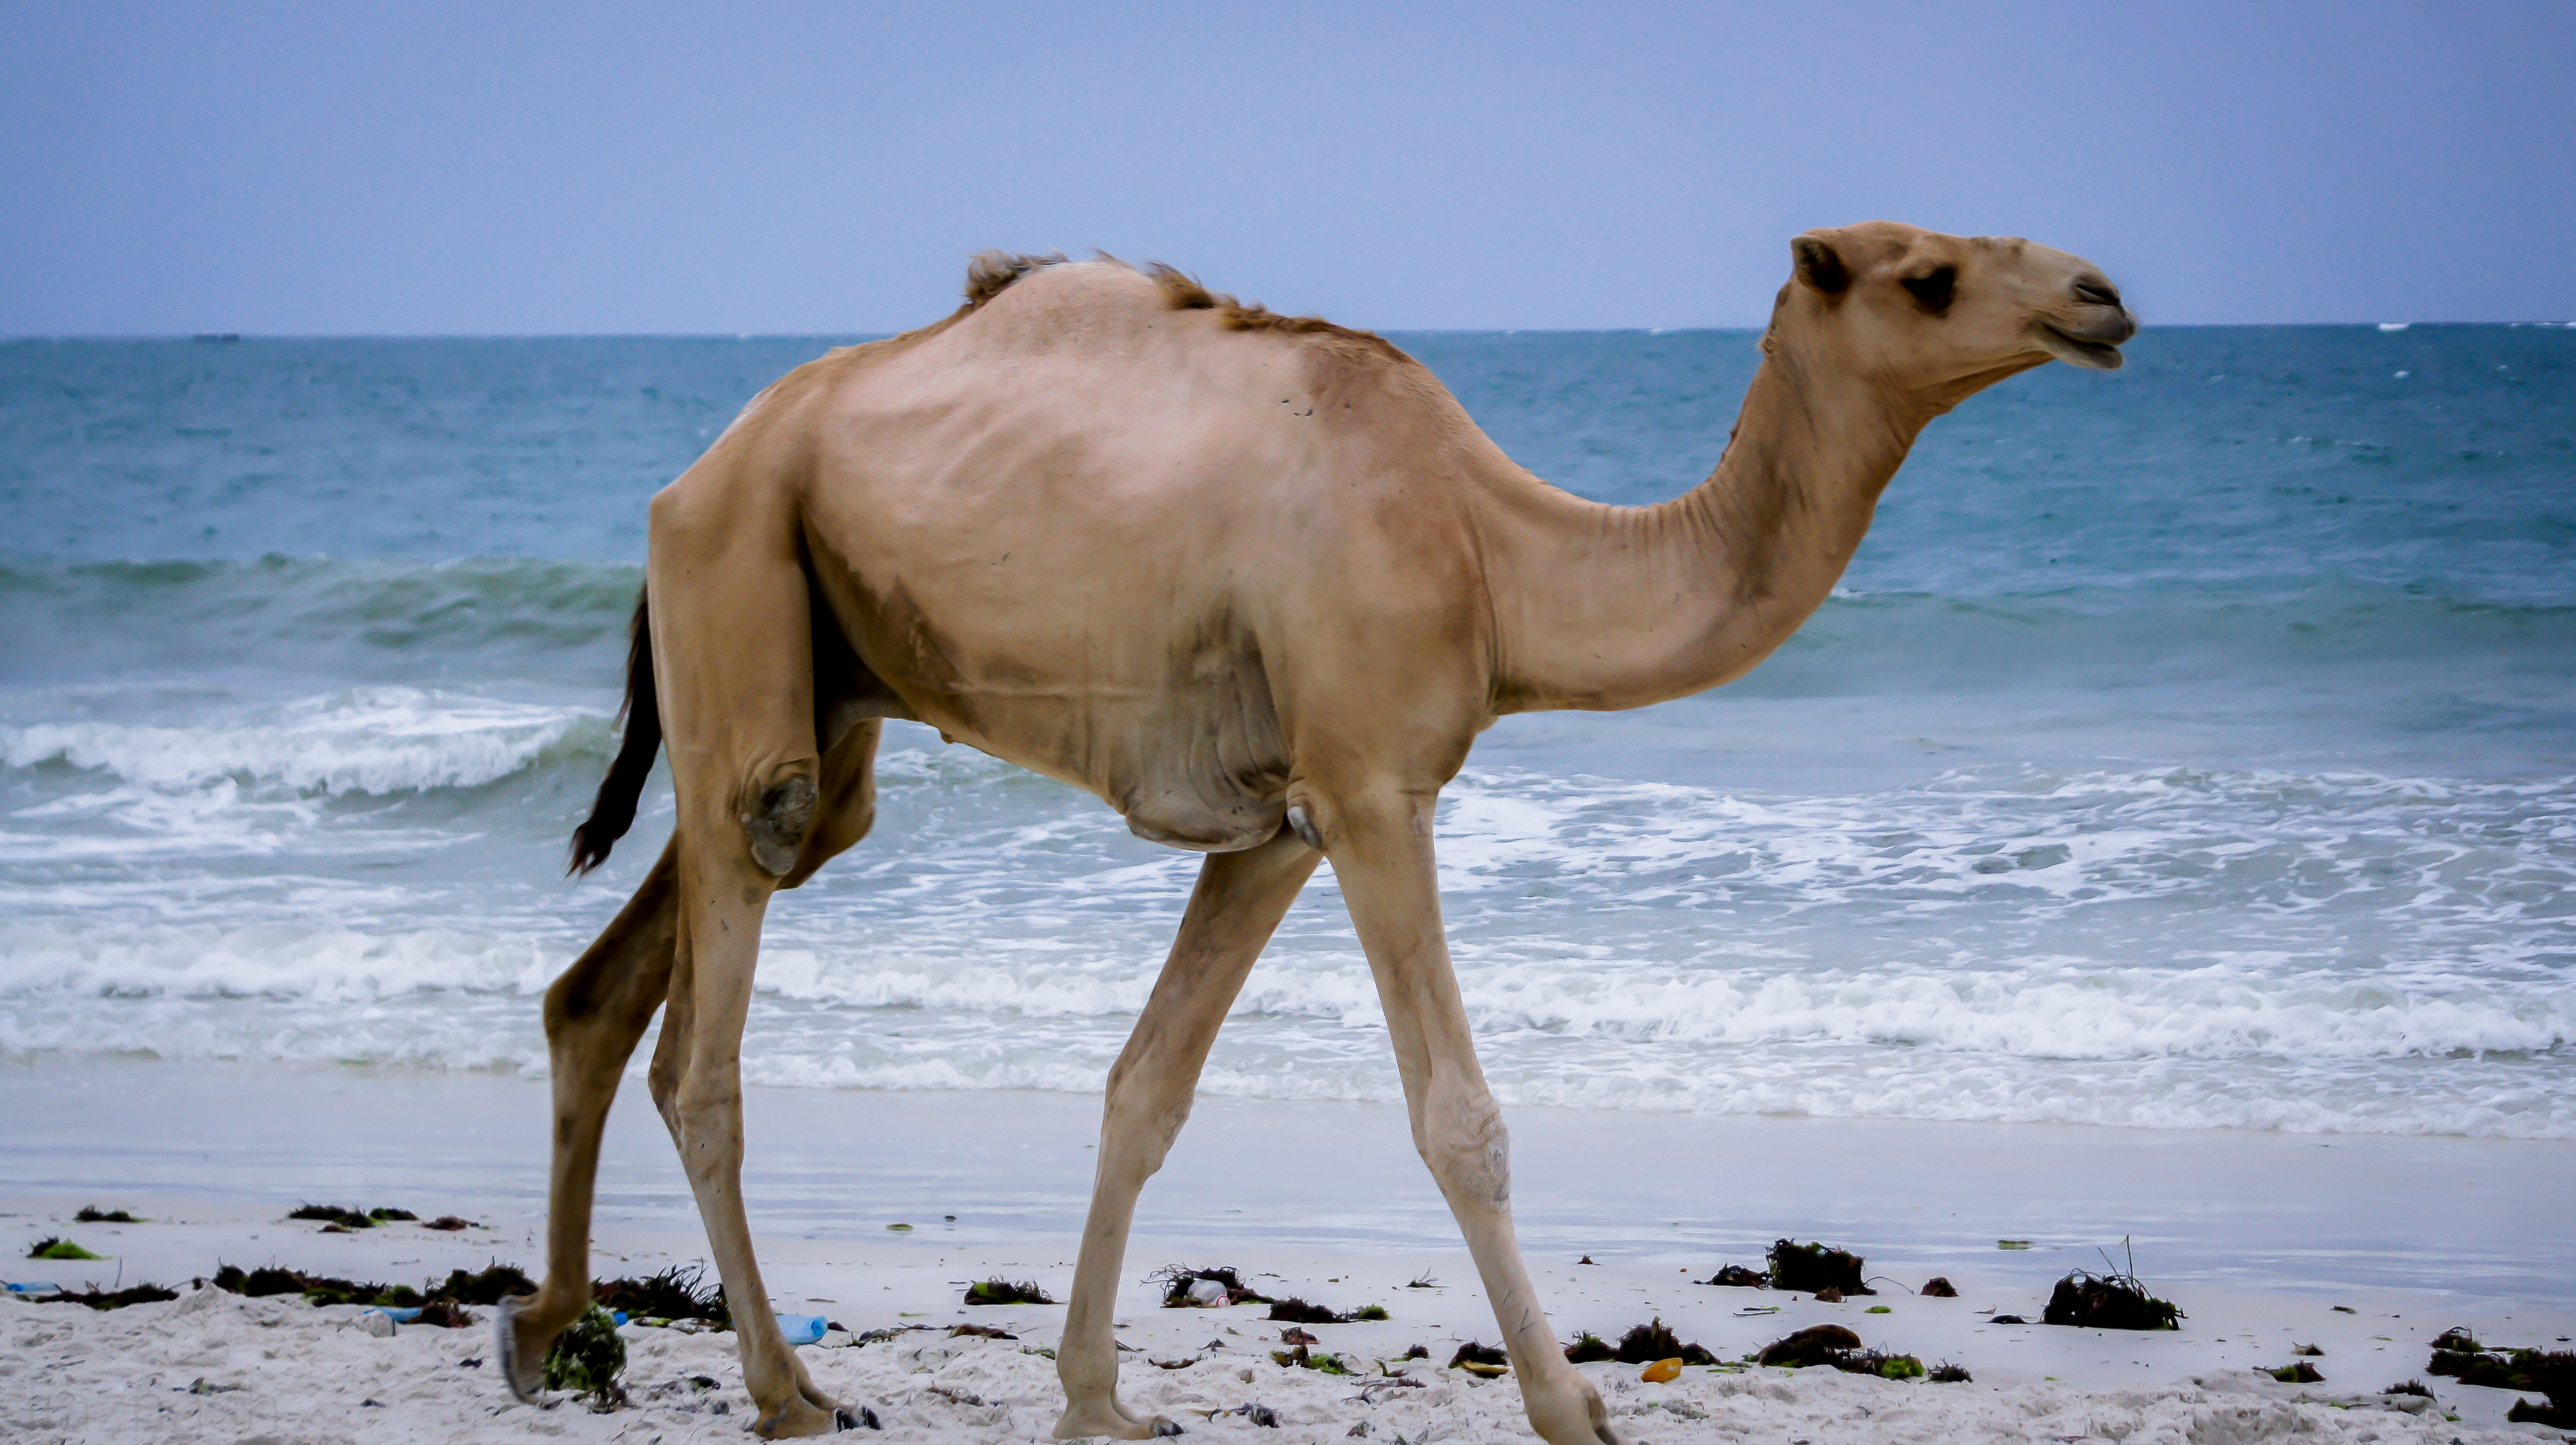 Camel,water,wave,beach